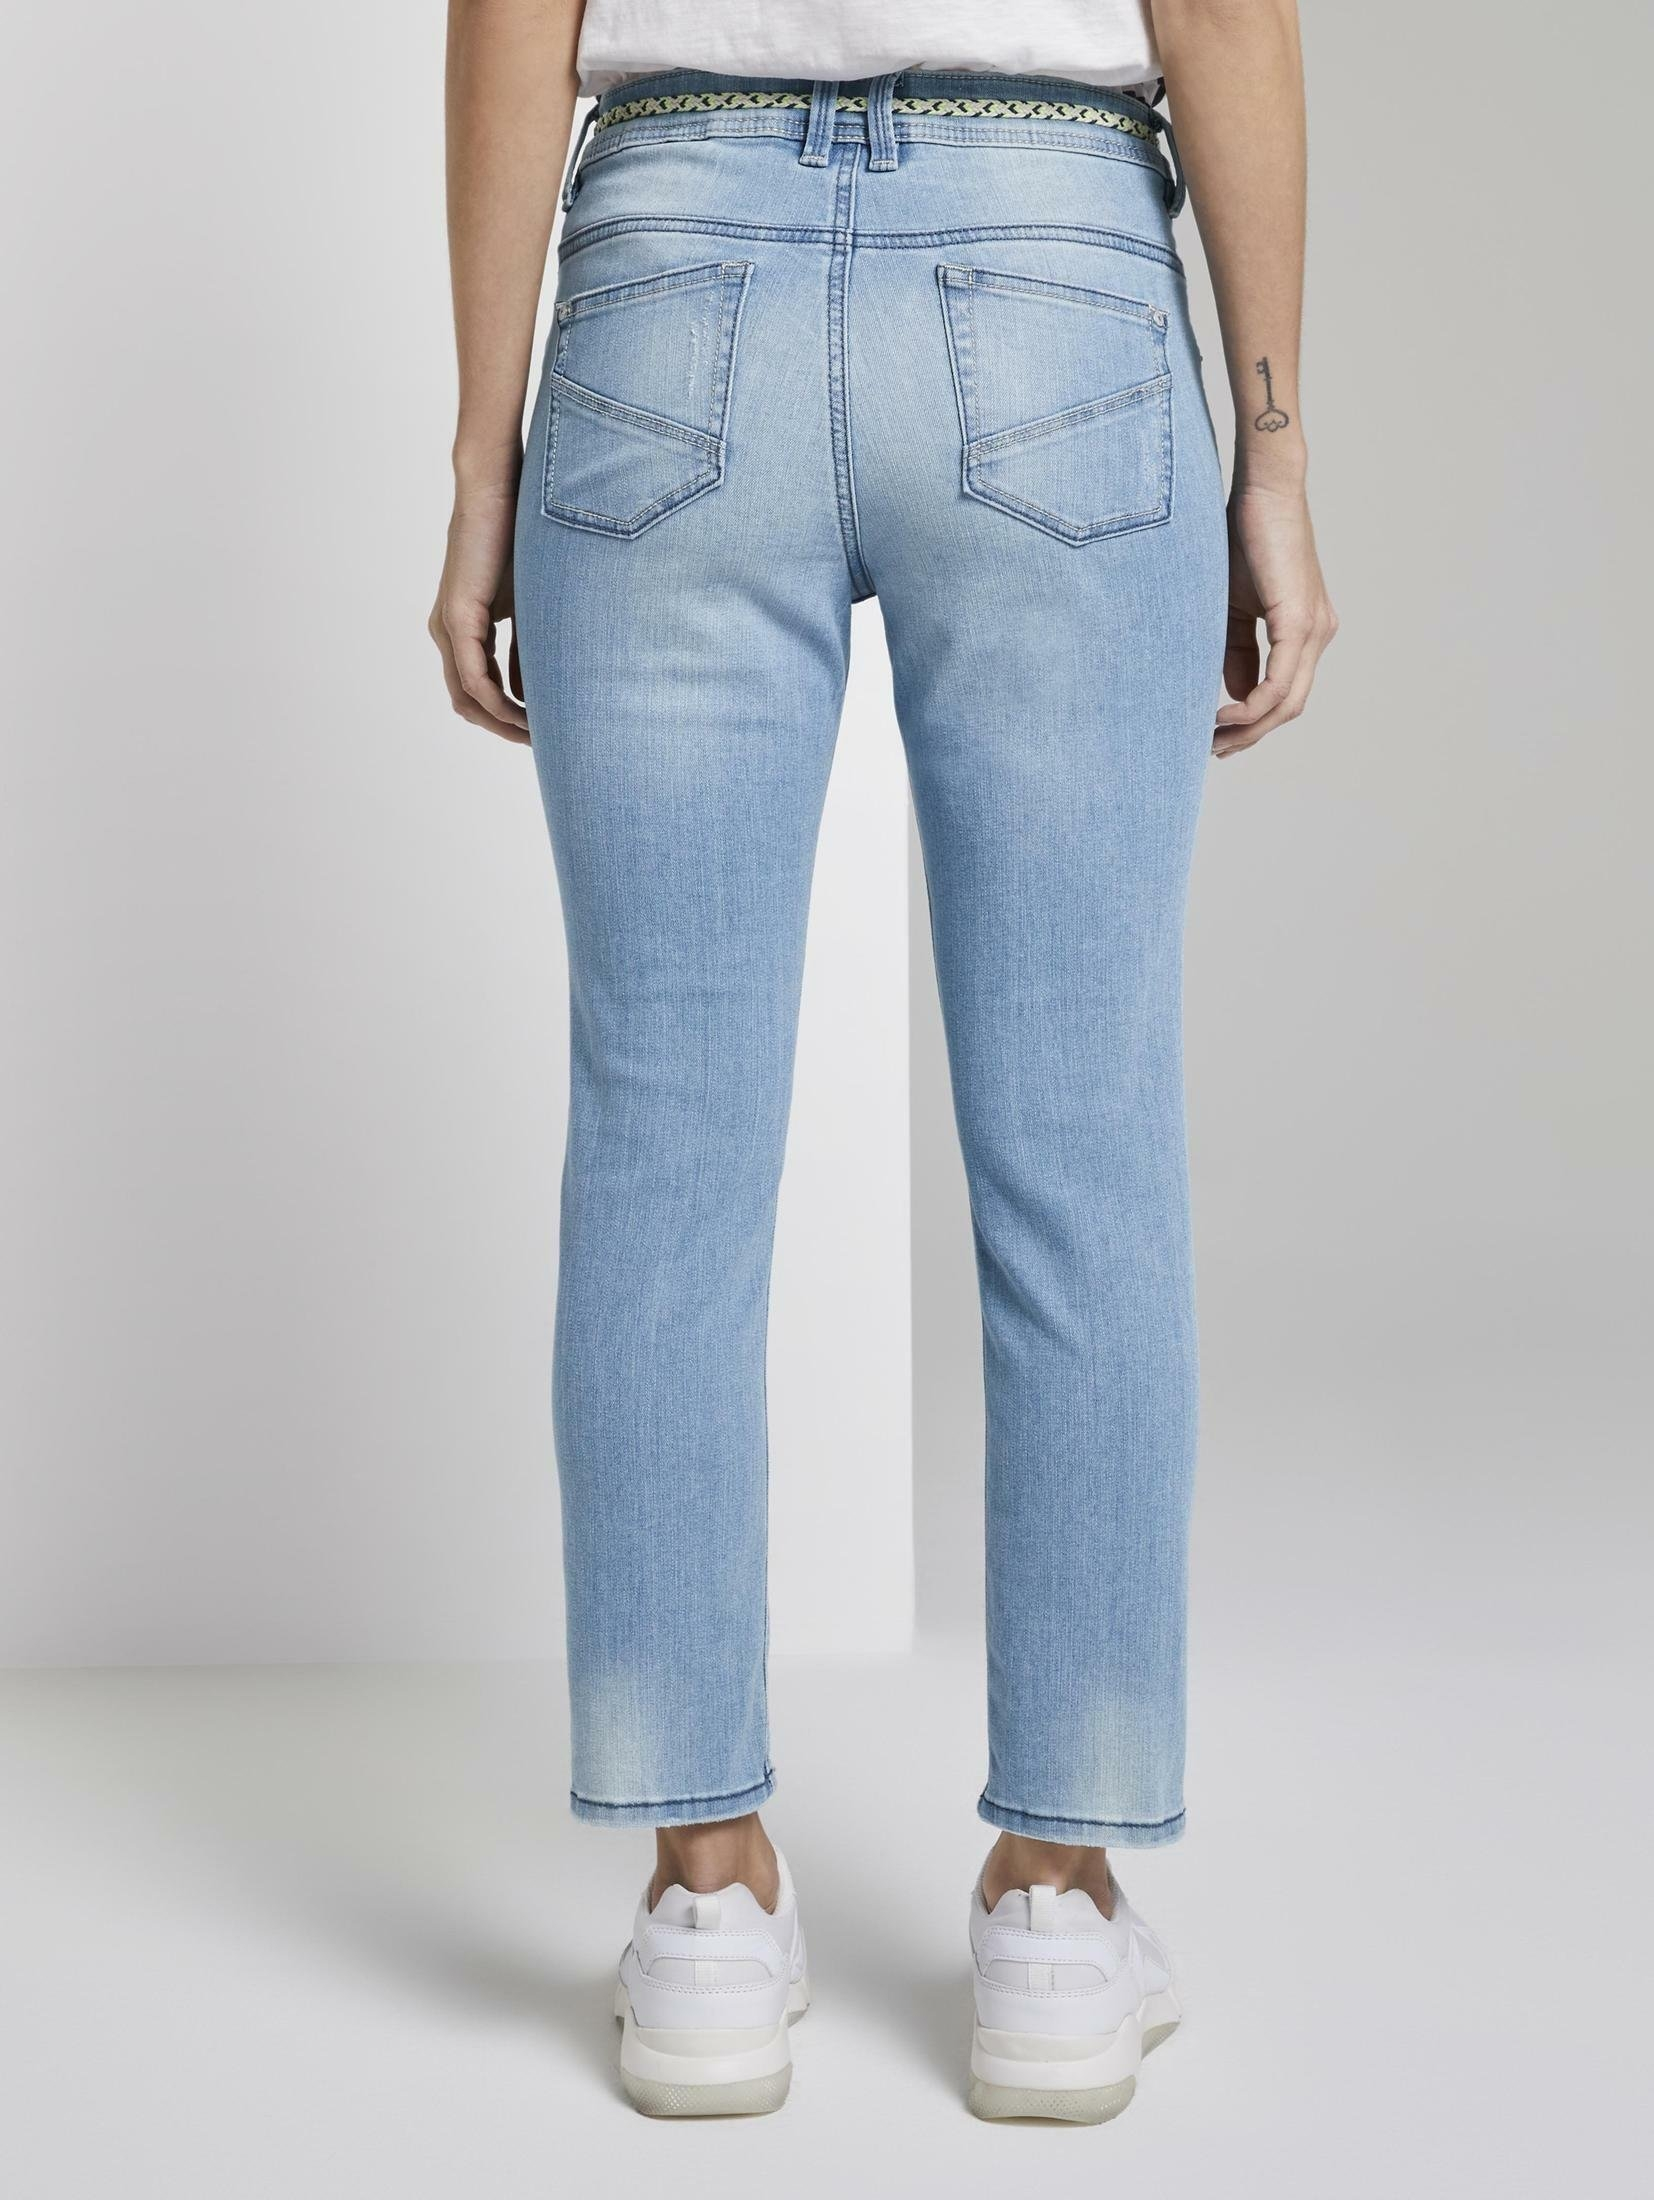 TOM TAILOR regular fit jeans »Tapered Relaxed Jeans in 7/8-Länge« bestellen: 30 dagen bedenktijd